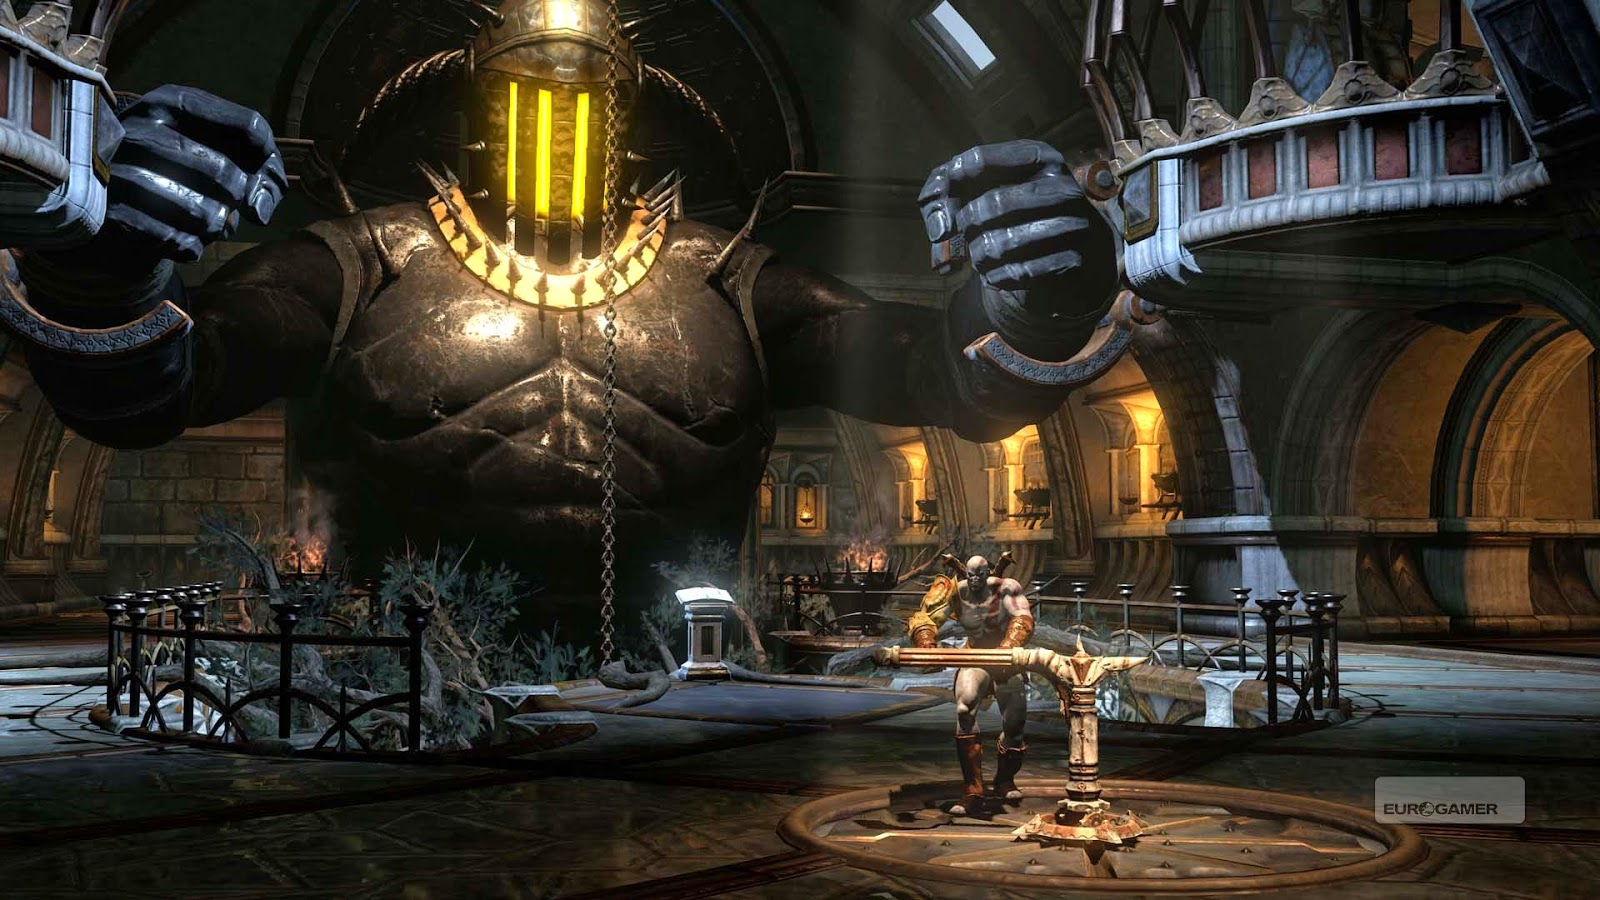 God Of War 3 For Pc Free Download Highly Compressed